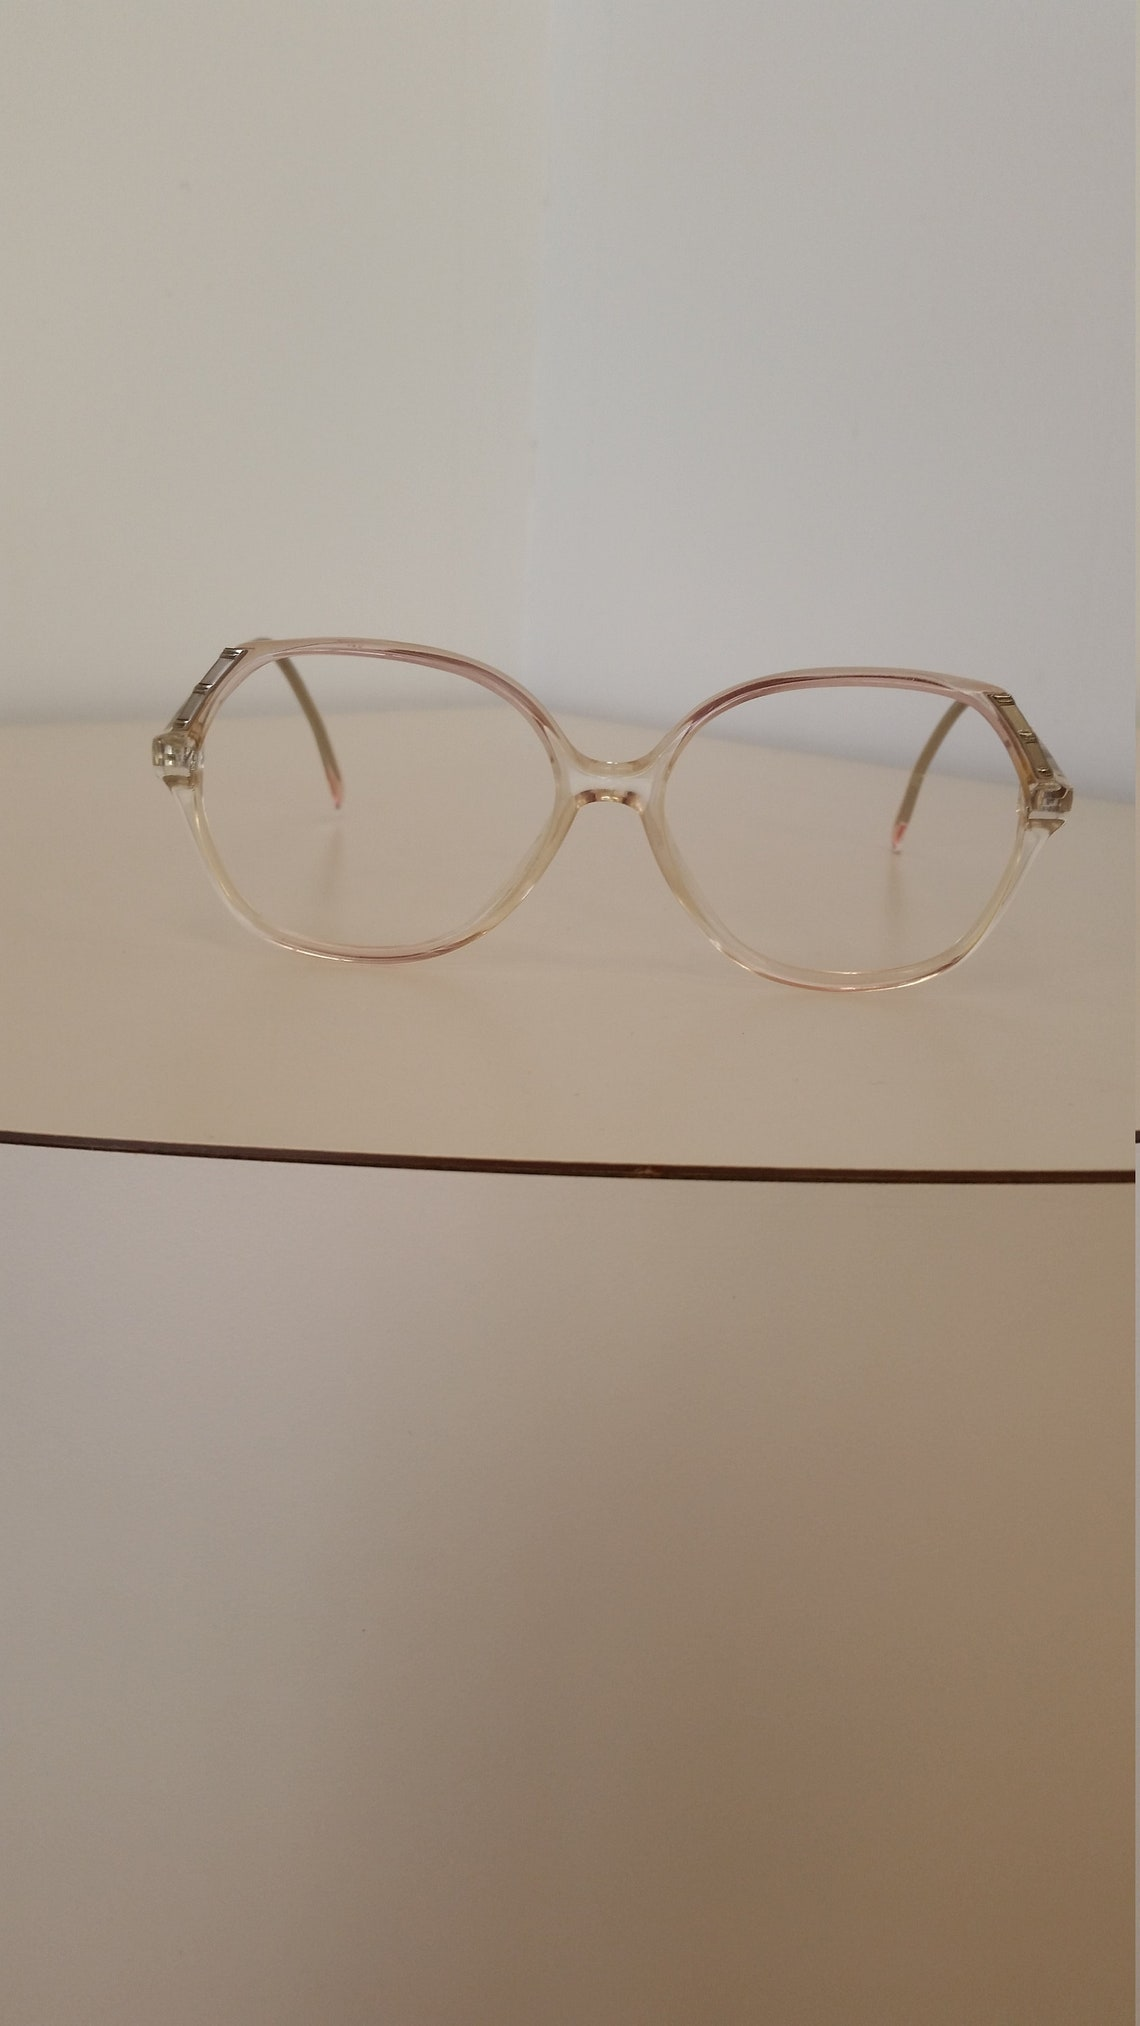 1970s Marchon Eyeglasses Frame; Rose Fade Plastic with Taupe Insets; Beautiful Vintage Condition; No Lenses; Rx-able & Ready for your Lenses